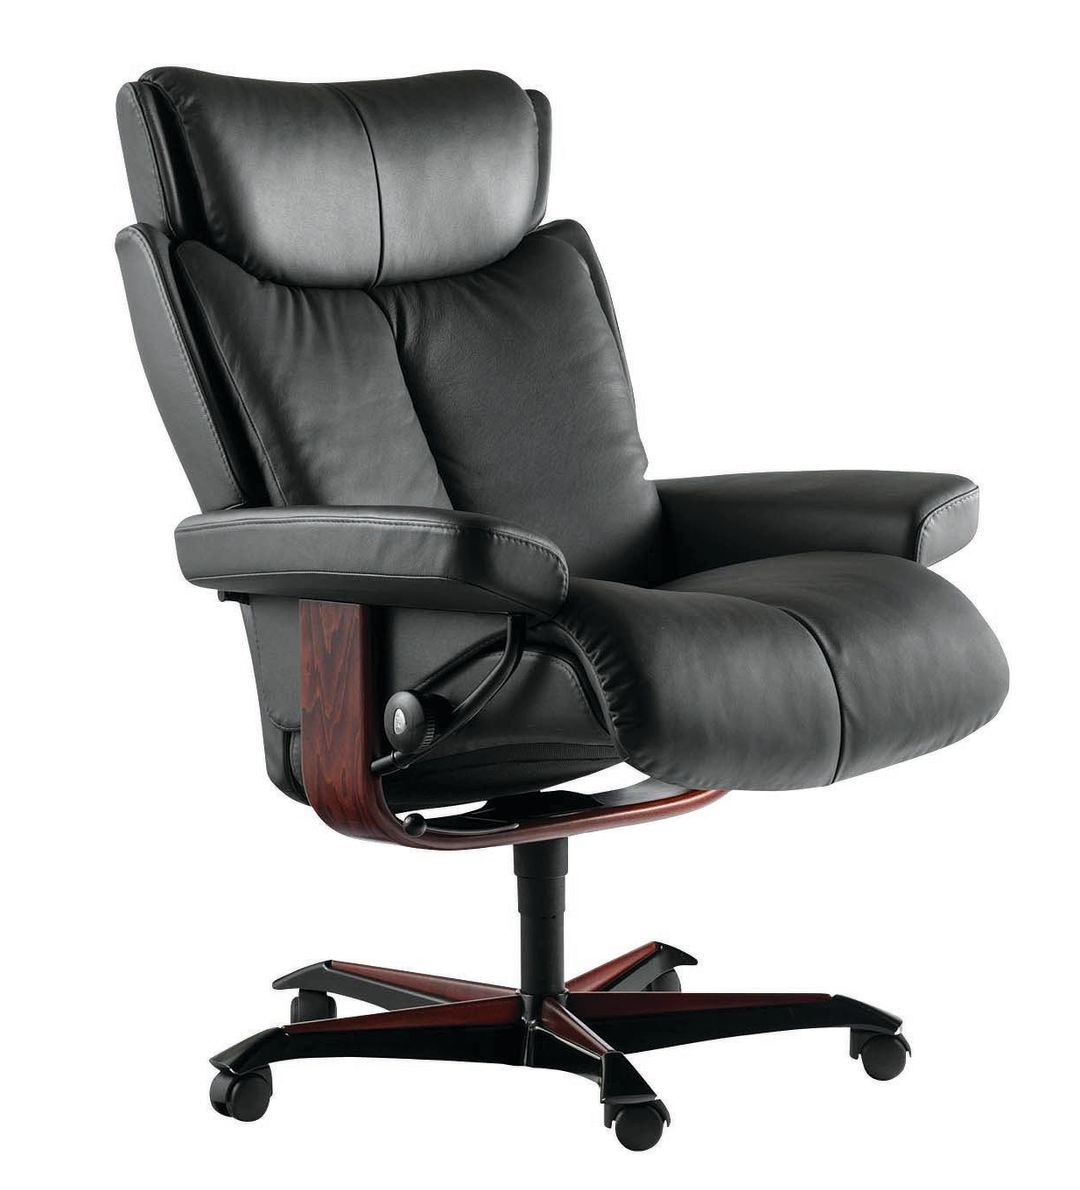 comfort office chair. 6320 Stressless Magic Office Chair Med Jgmyhc Comfort S